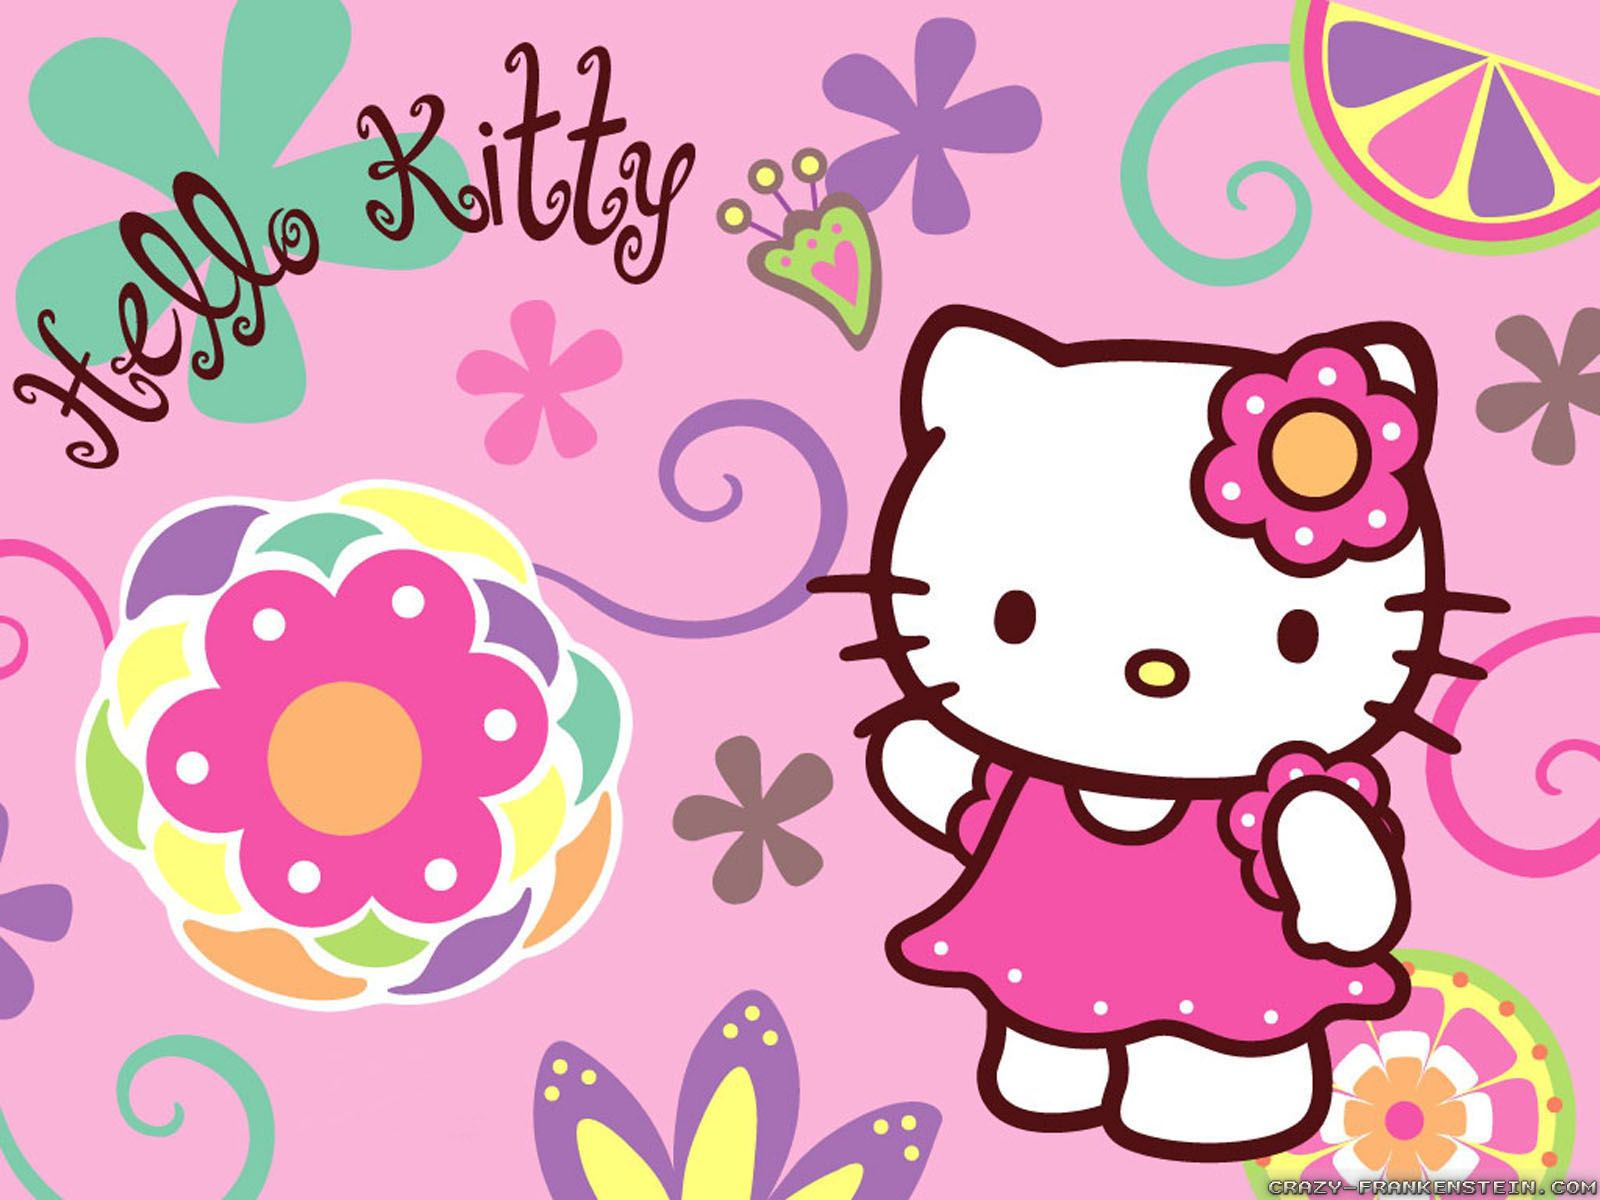 Wallpaper Hello Kitty 22 Wallpapers – Adorable Wallpapers